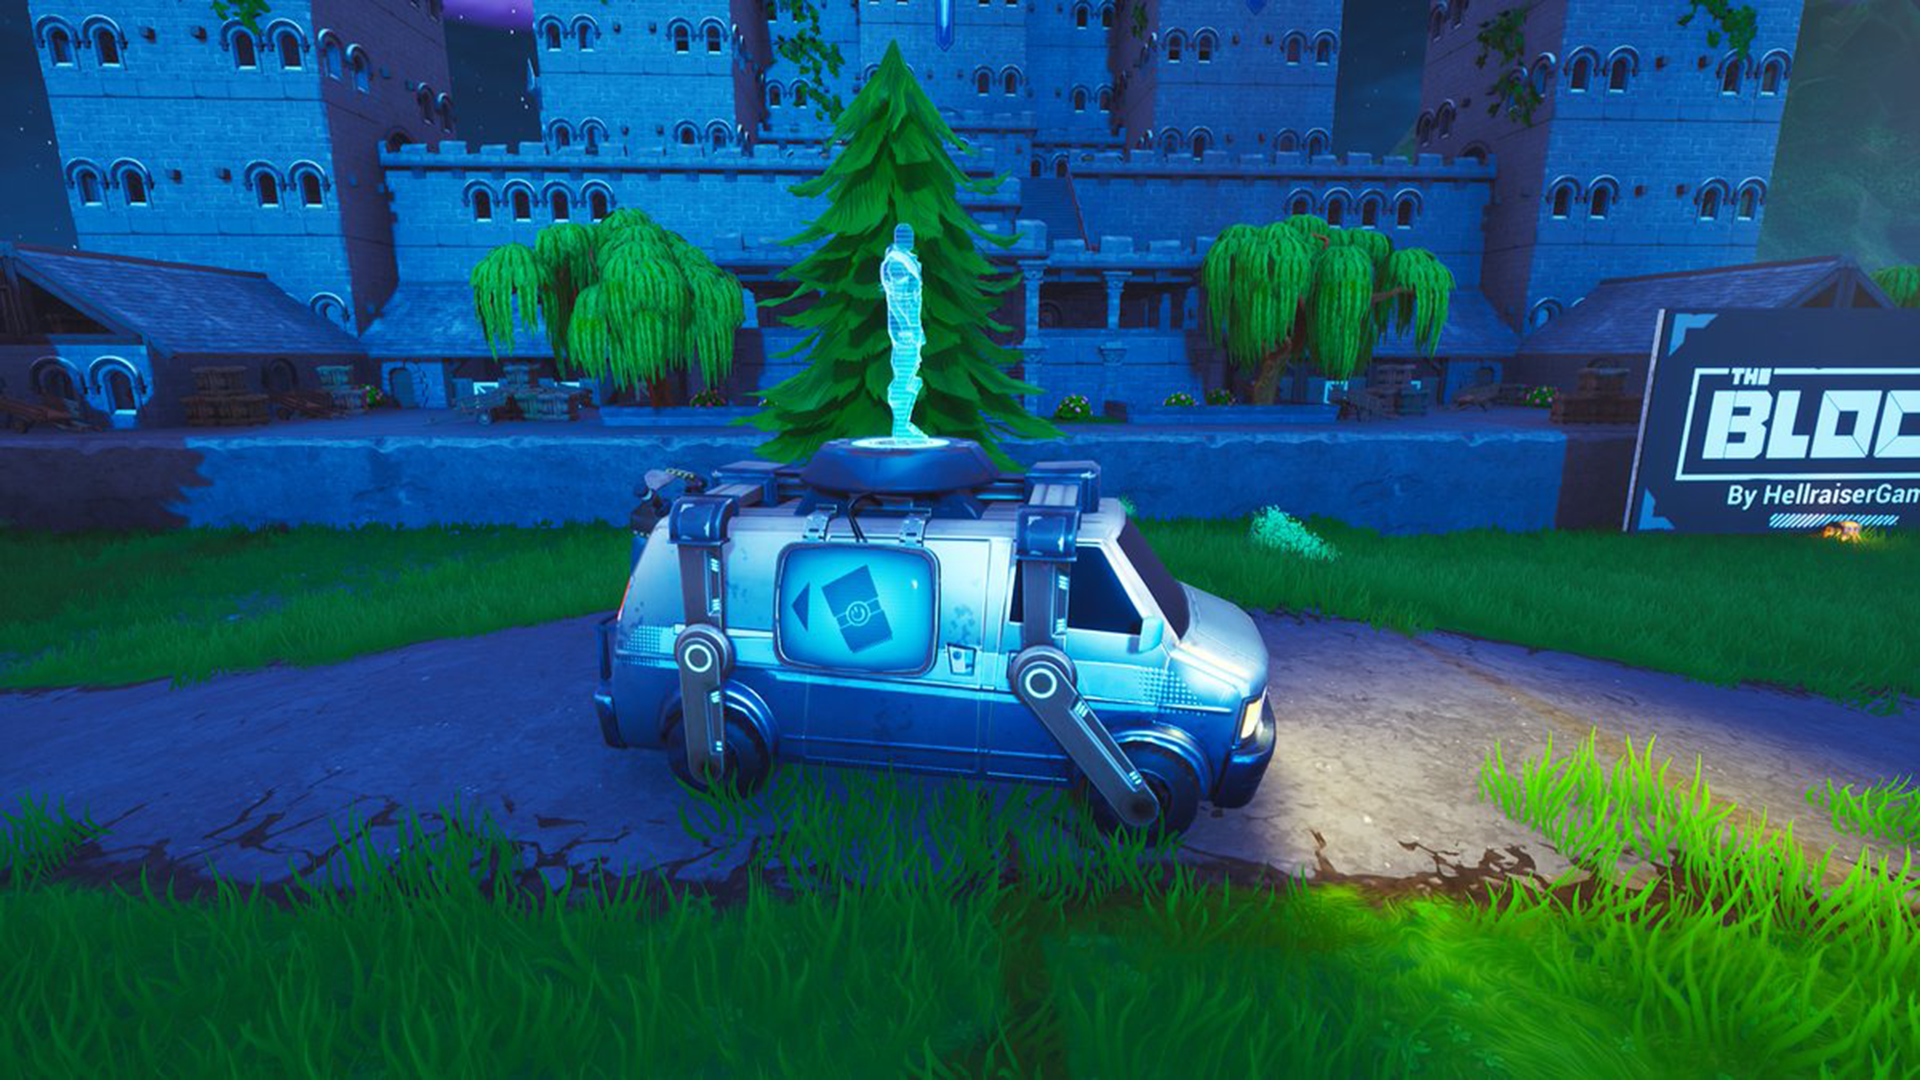 Next Beacon Fortnite Is Fortnite Stealing Respawn Beacons From Apex Legends With Mysterious Vans Sporting News